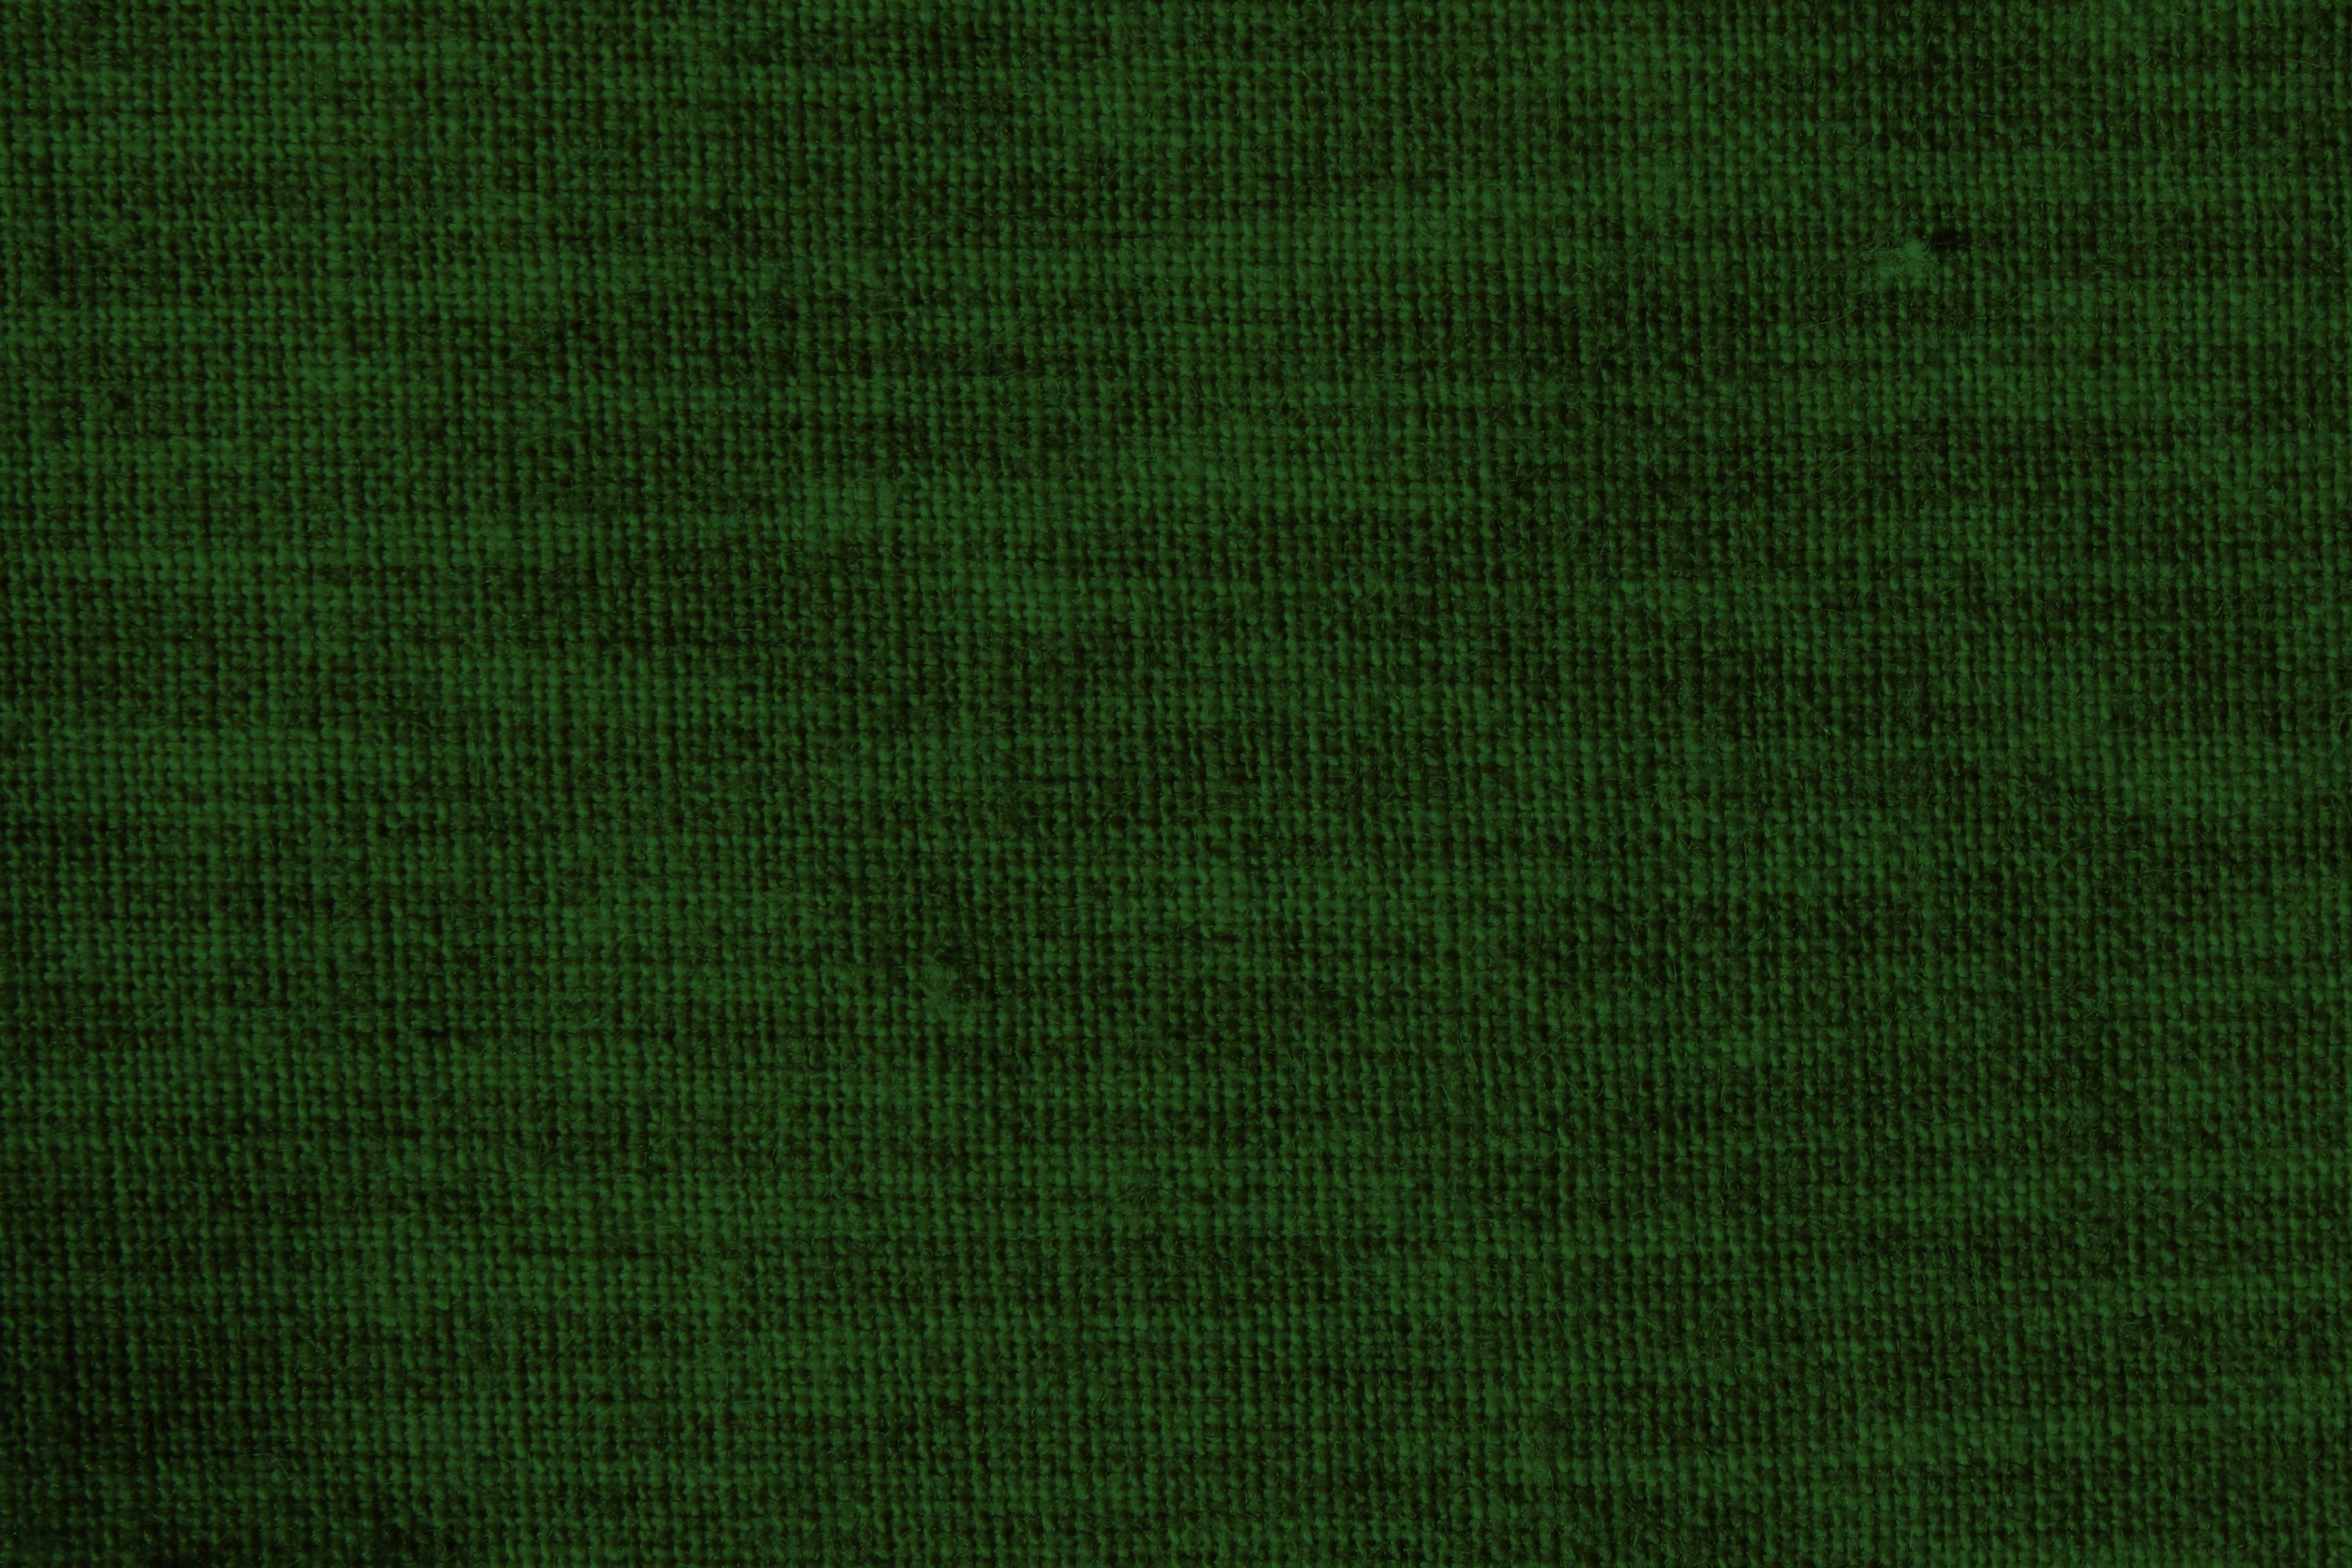 Striped fabric texture green on white free high resolution photo - Striped Fabric Texture Green On White Free High Resolution Photo 6